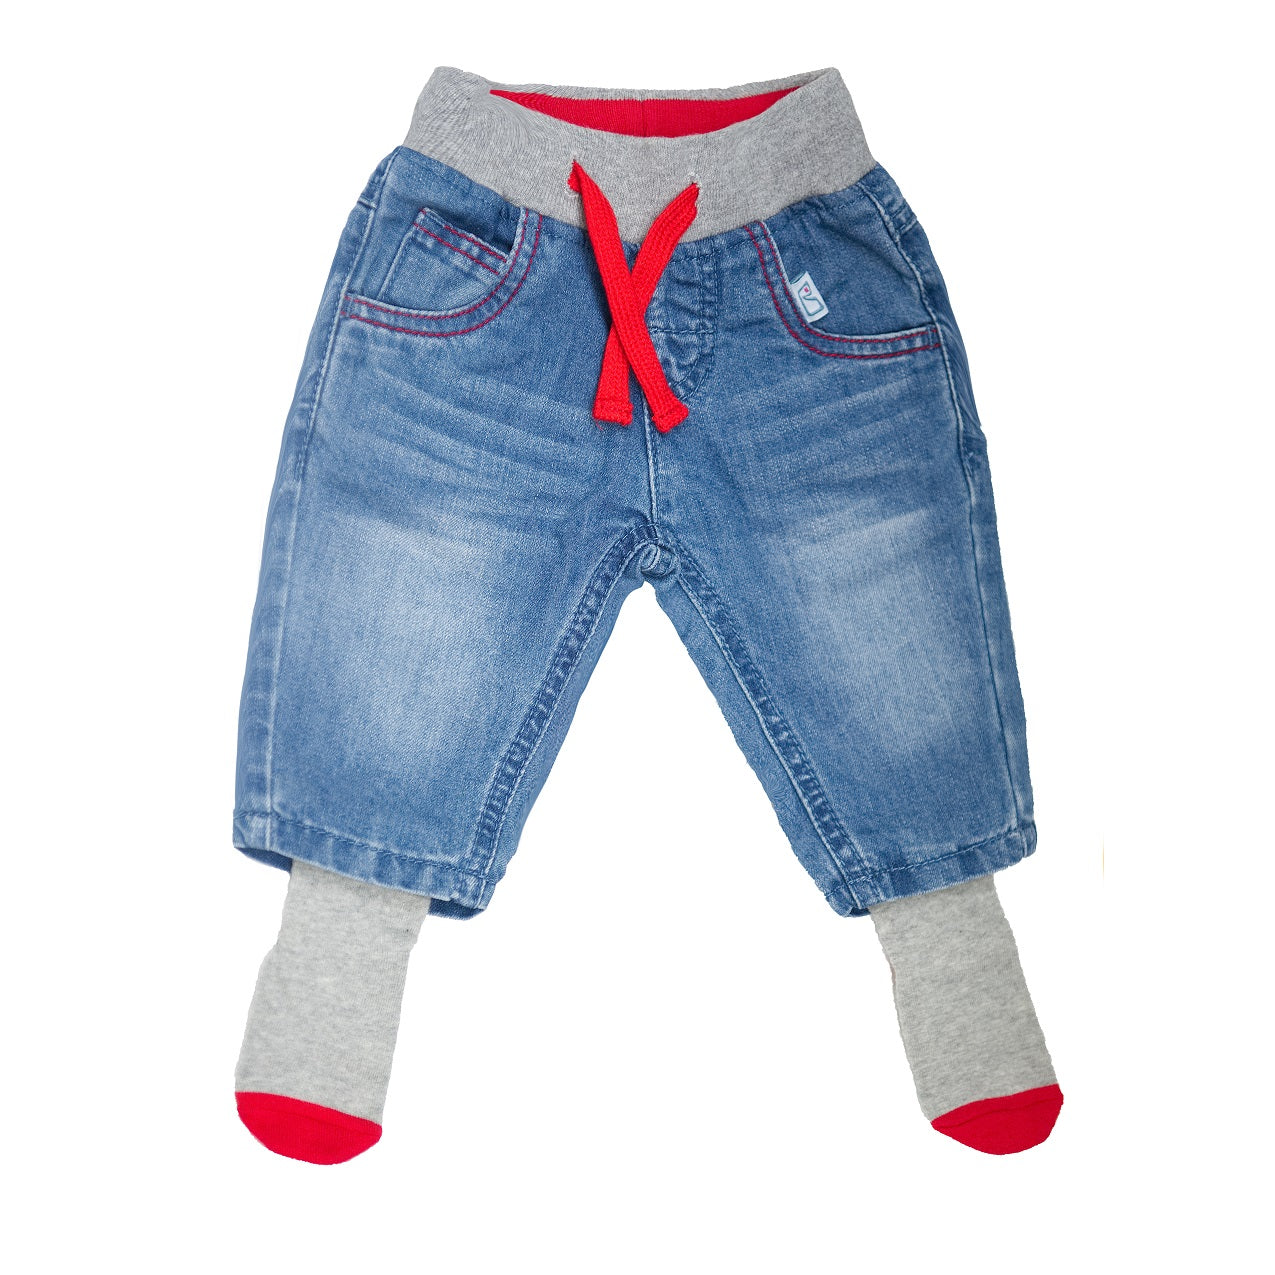 Sockatoos Original Jeans - RED